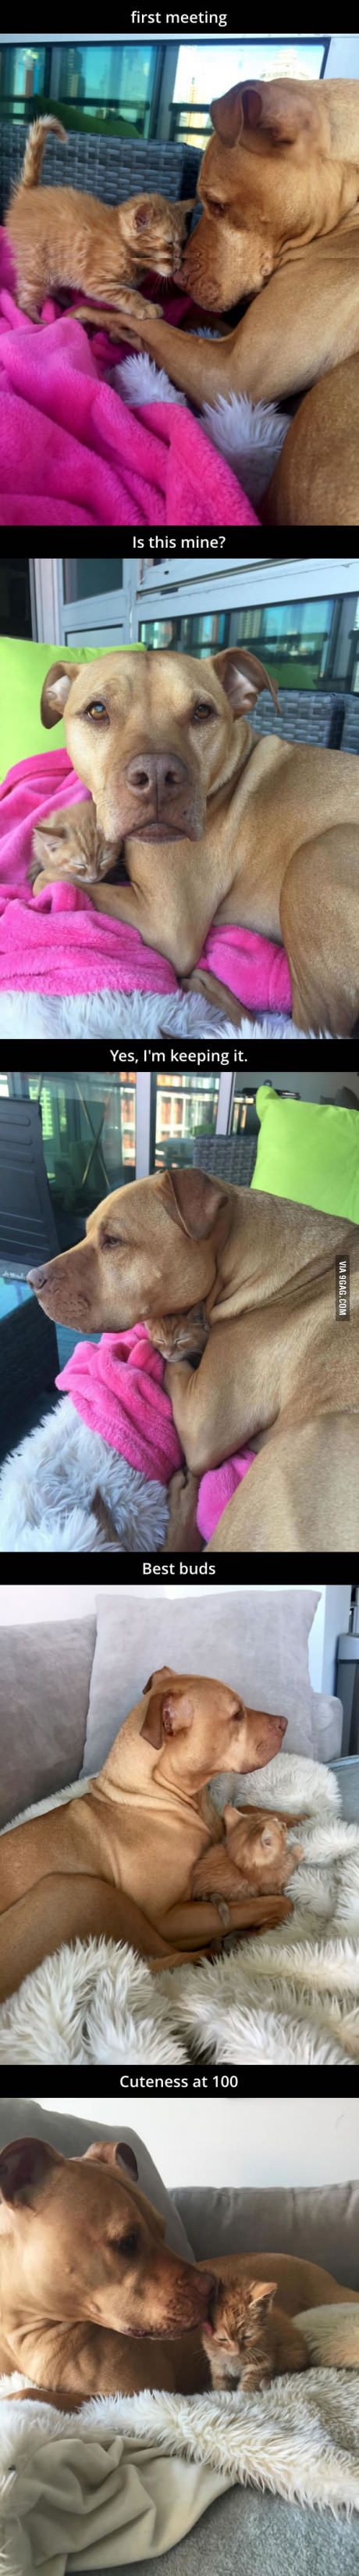 Dog gets its own kitten!